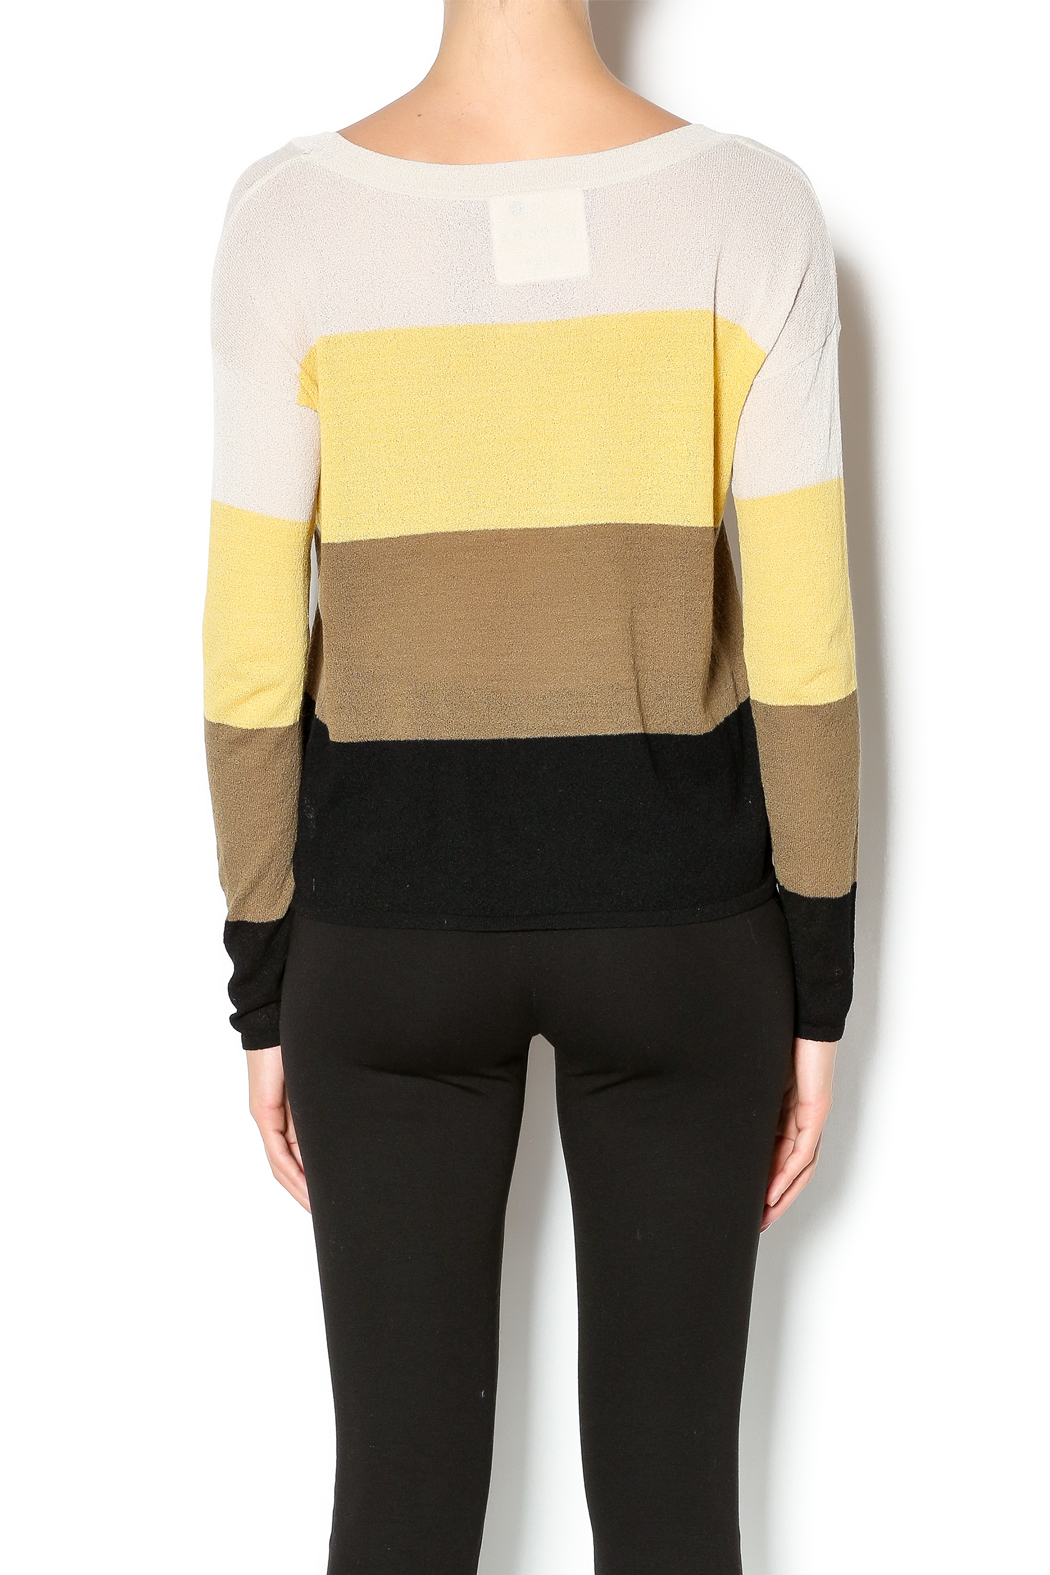 Kensie Striped Lightweight Sweater - Back Cropped Image